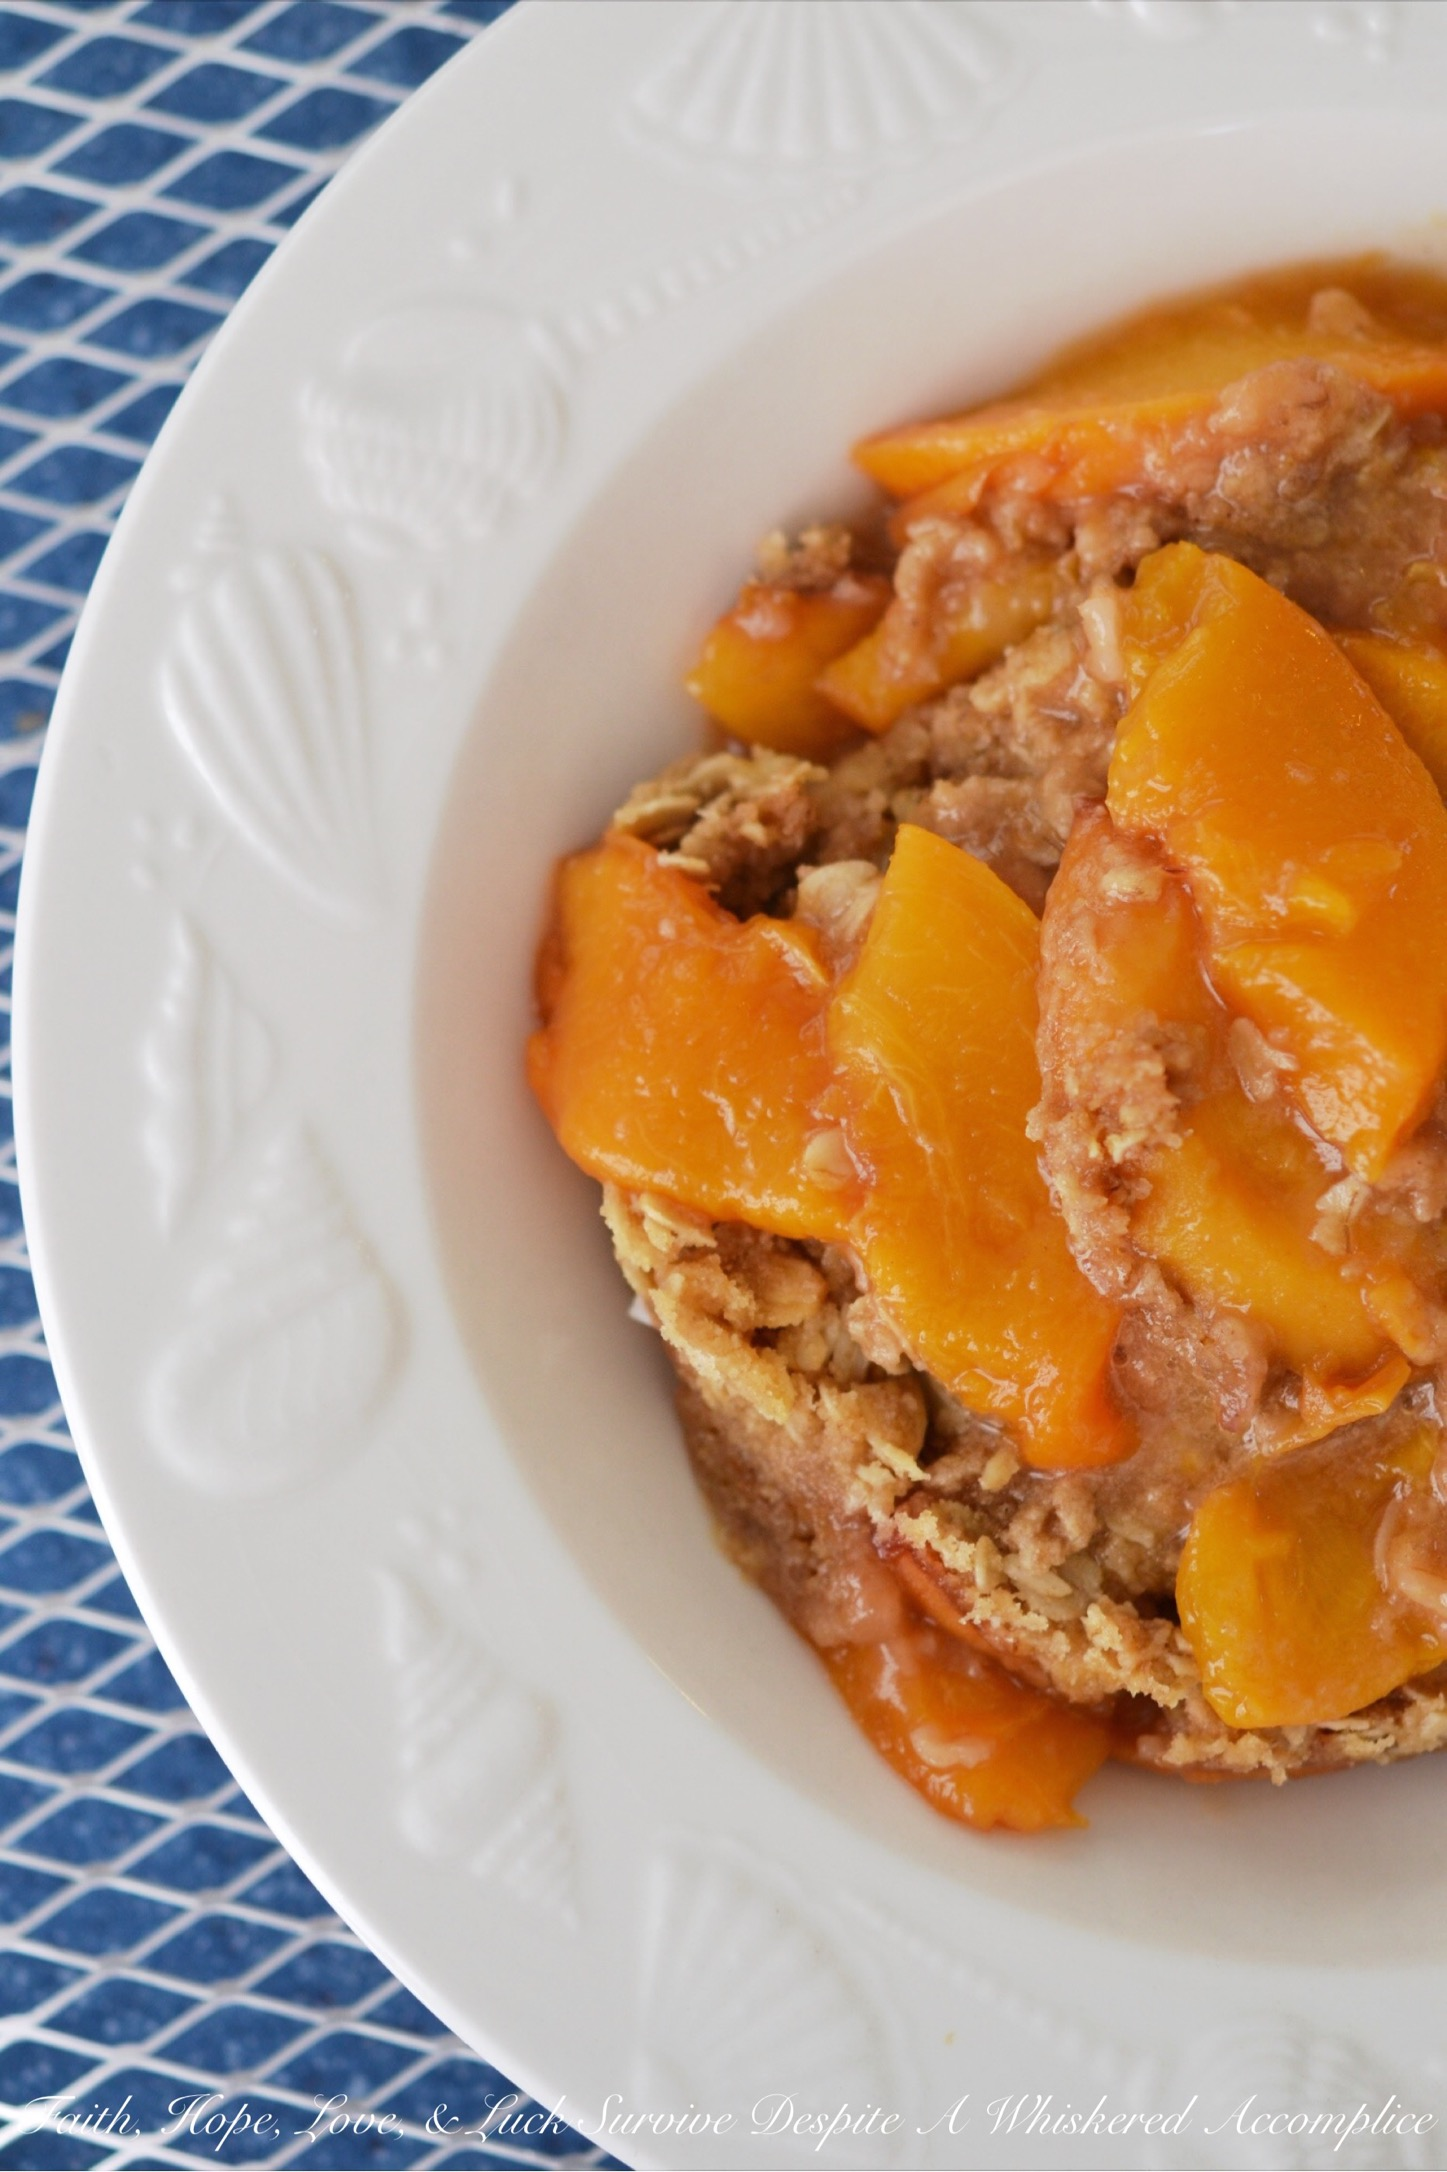 Malibu Crockpot Peach Beach Crisp